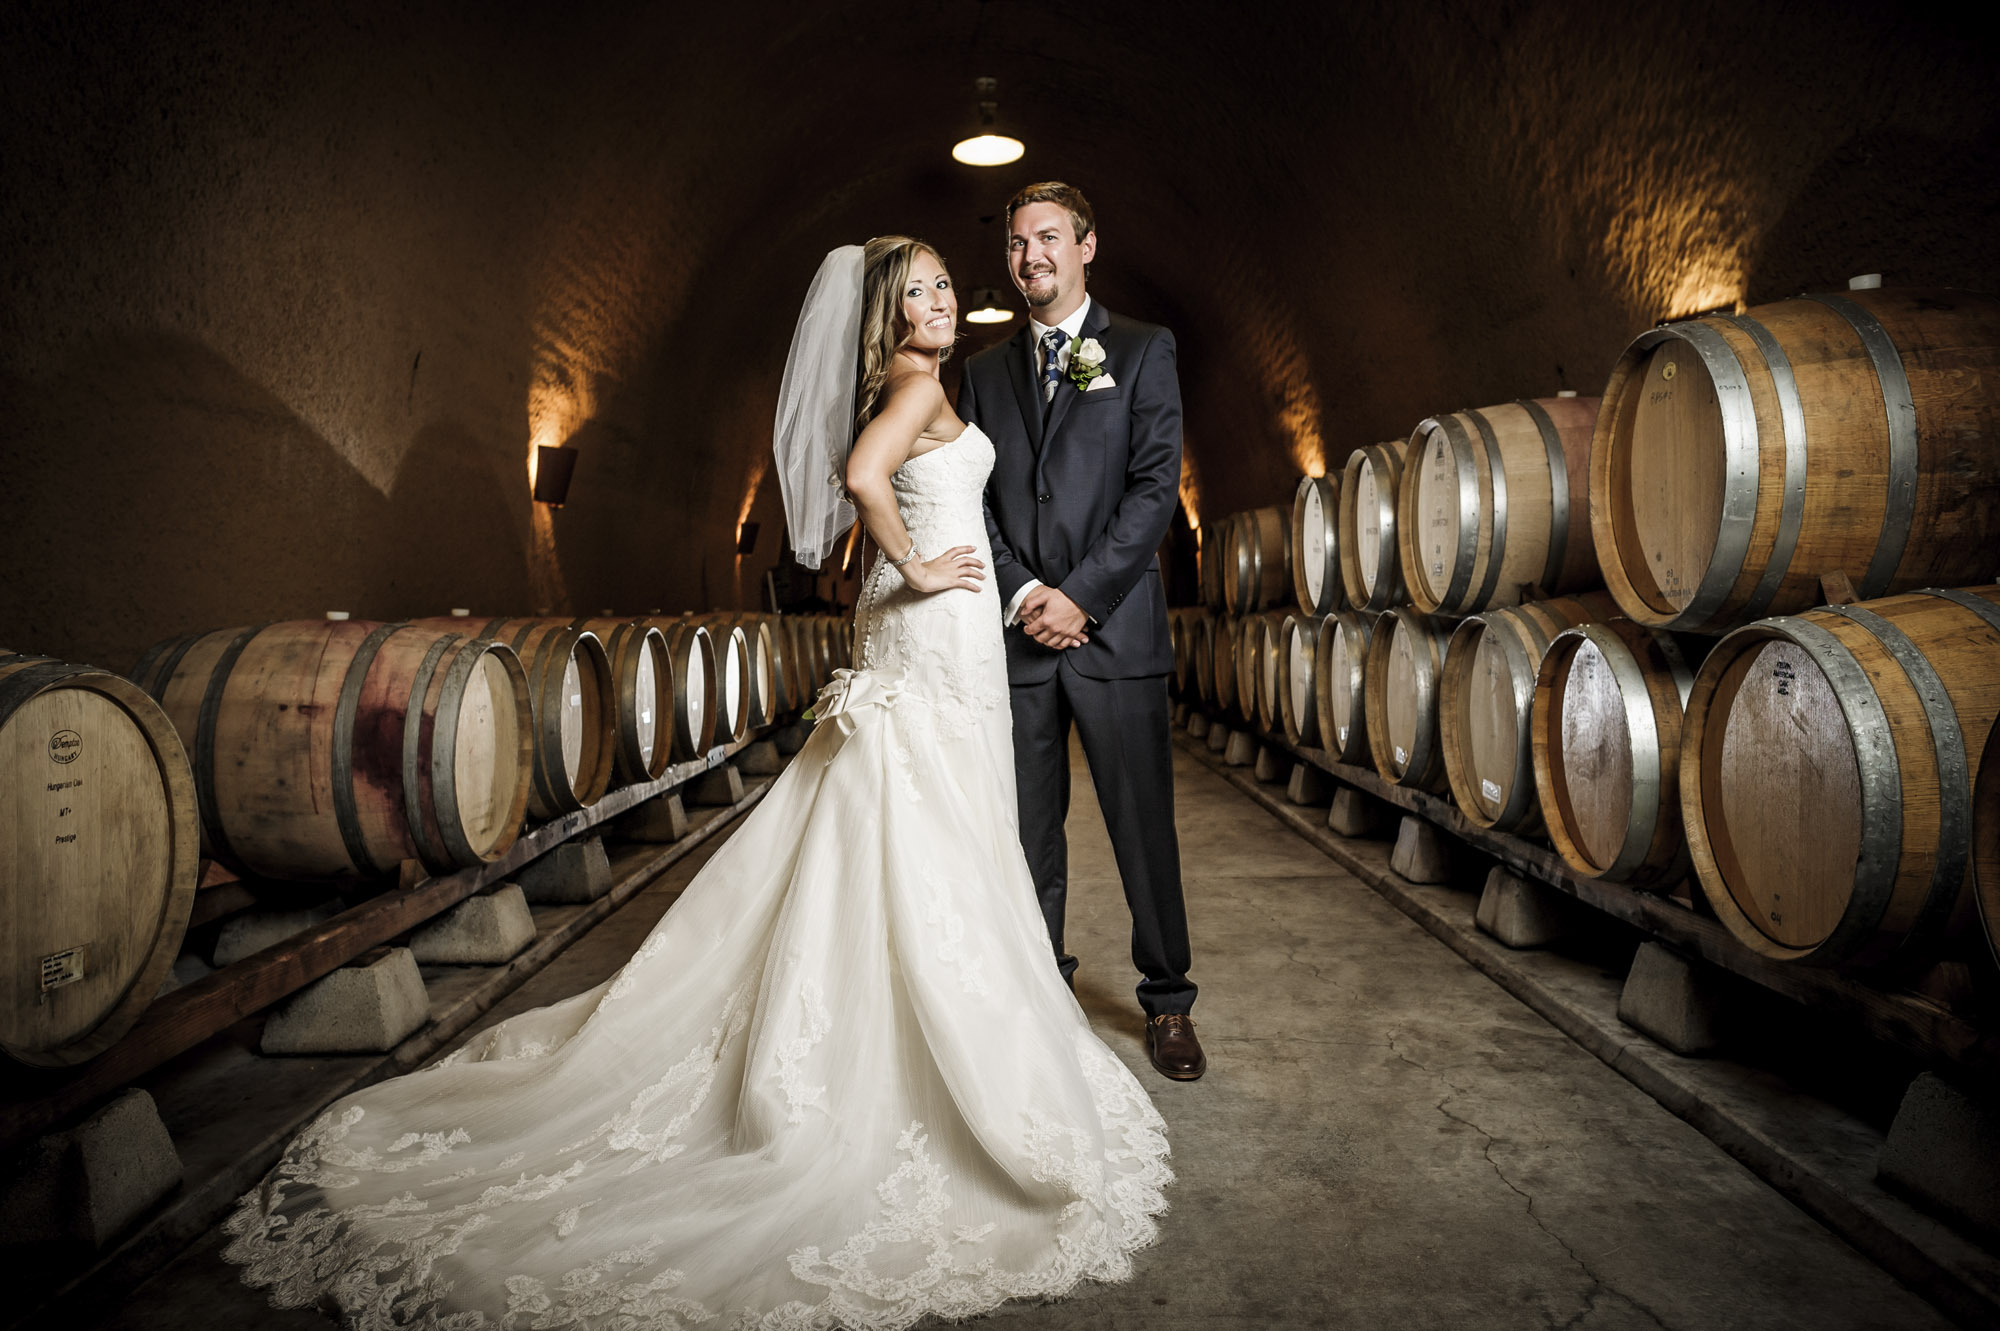 3947-d700_Erica_and_Justin_Byington_Winery_Los_Gatos_Wedding_Photography.jpg